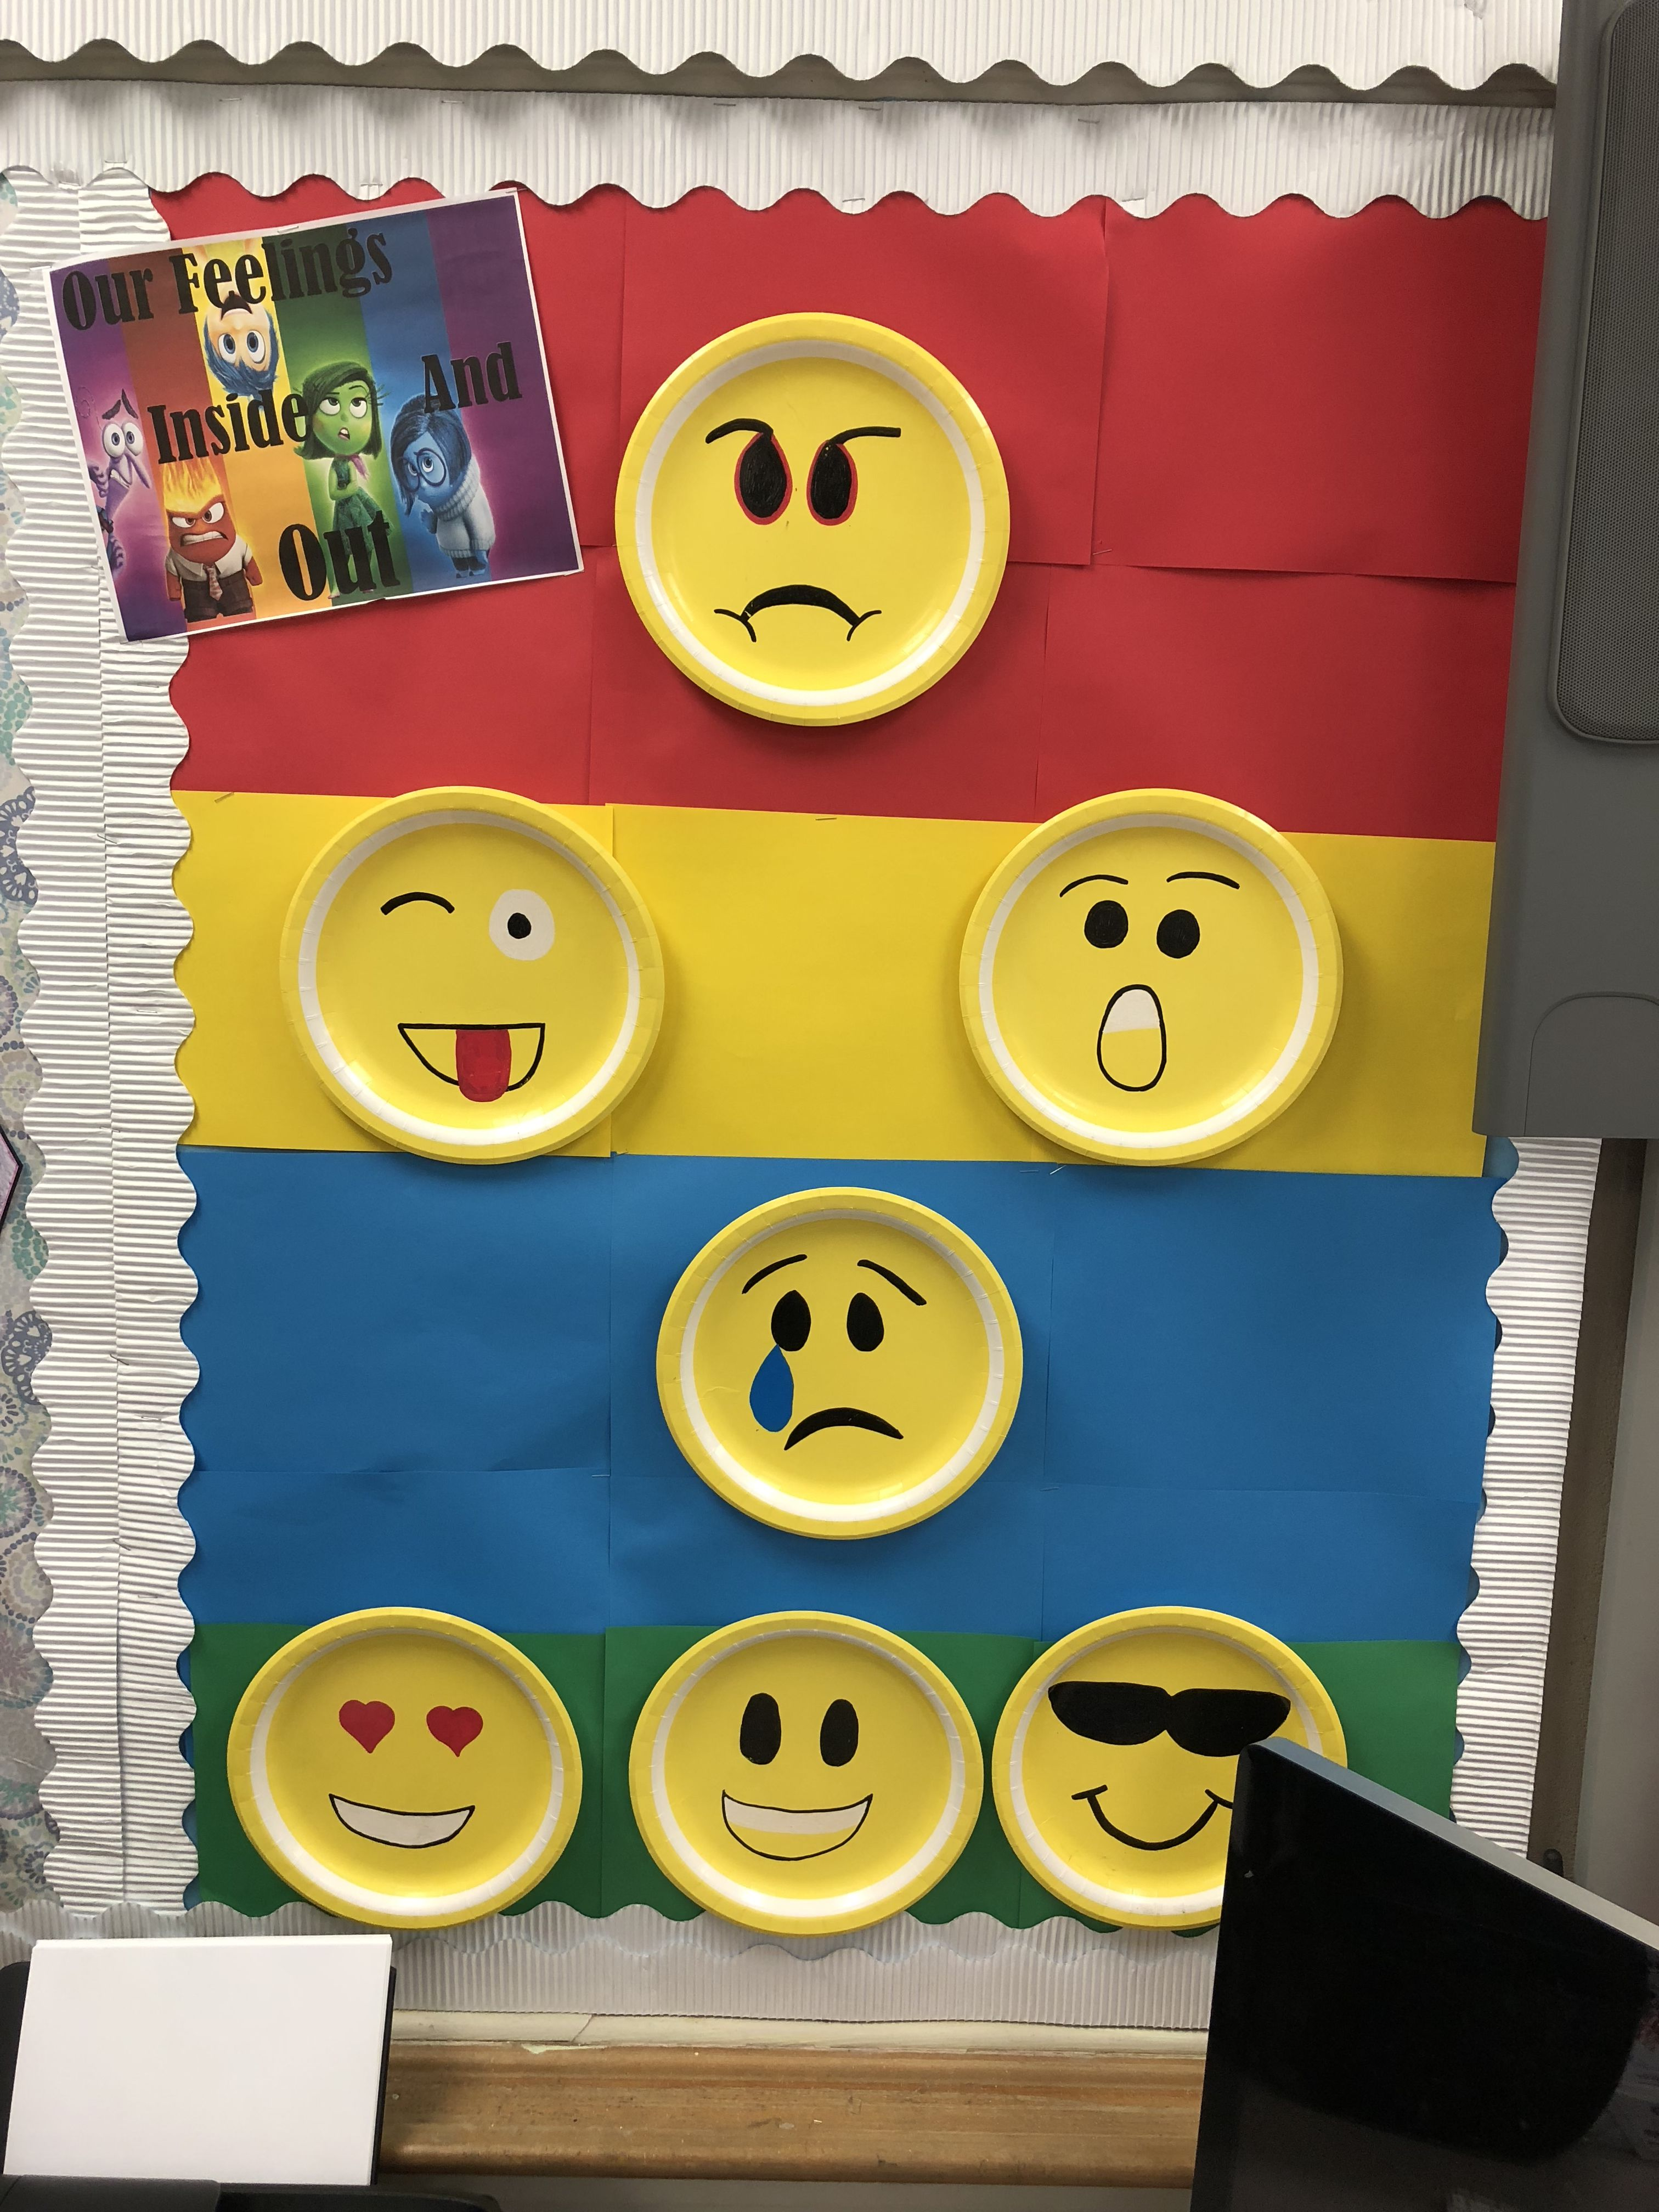 Zones Of Regulation Chart Bulletin Board With Inside Out